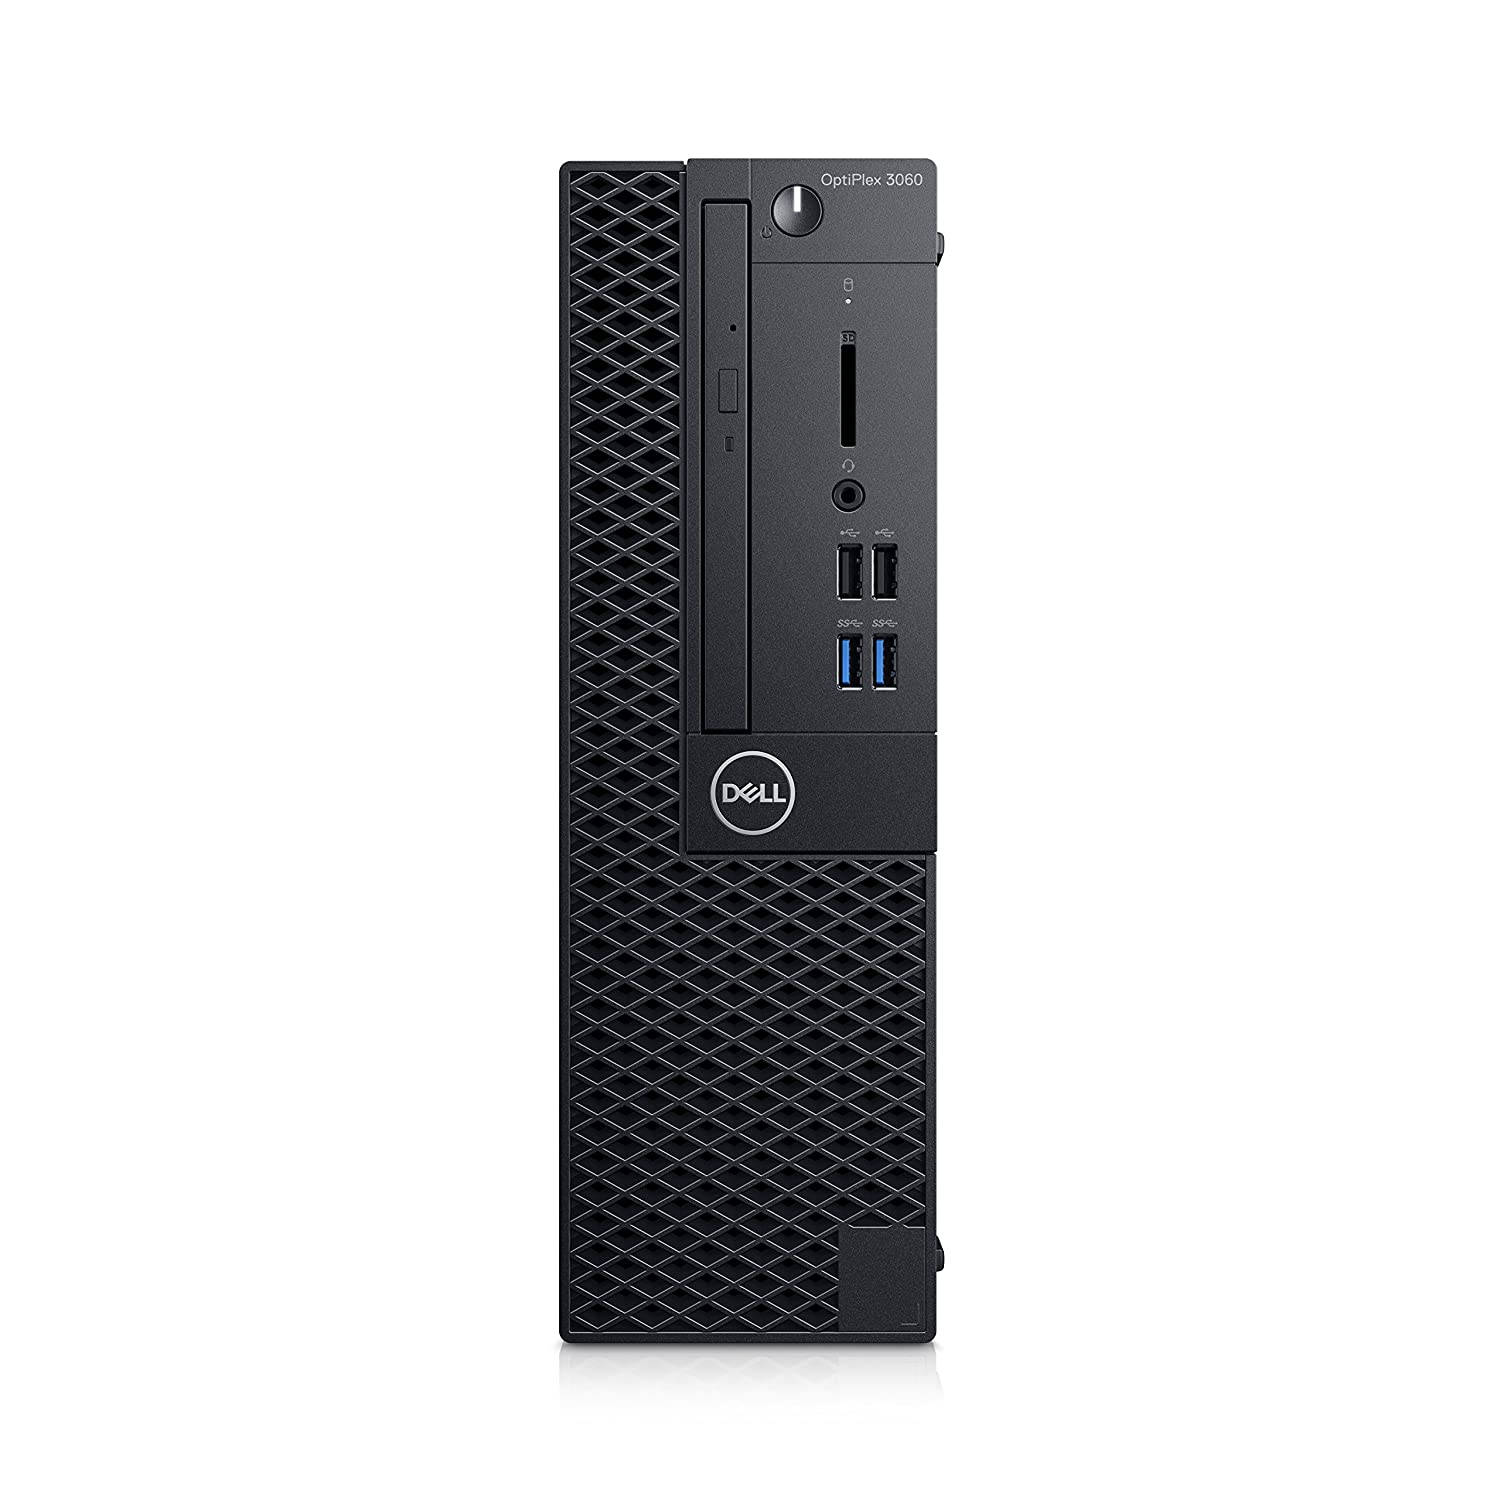 Dell OptiPlex 3060, 3,6 GHz, 8ª Generación de procesadores Intel Core i3, 4 GB, 500 GB, DVD RW, Windows 10 Pro